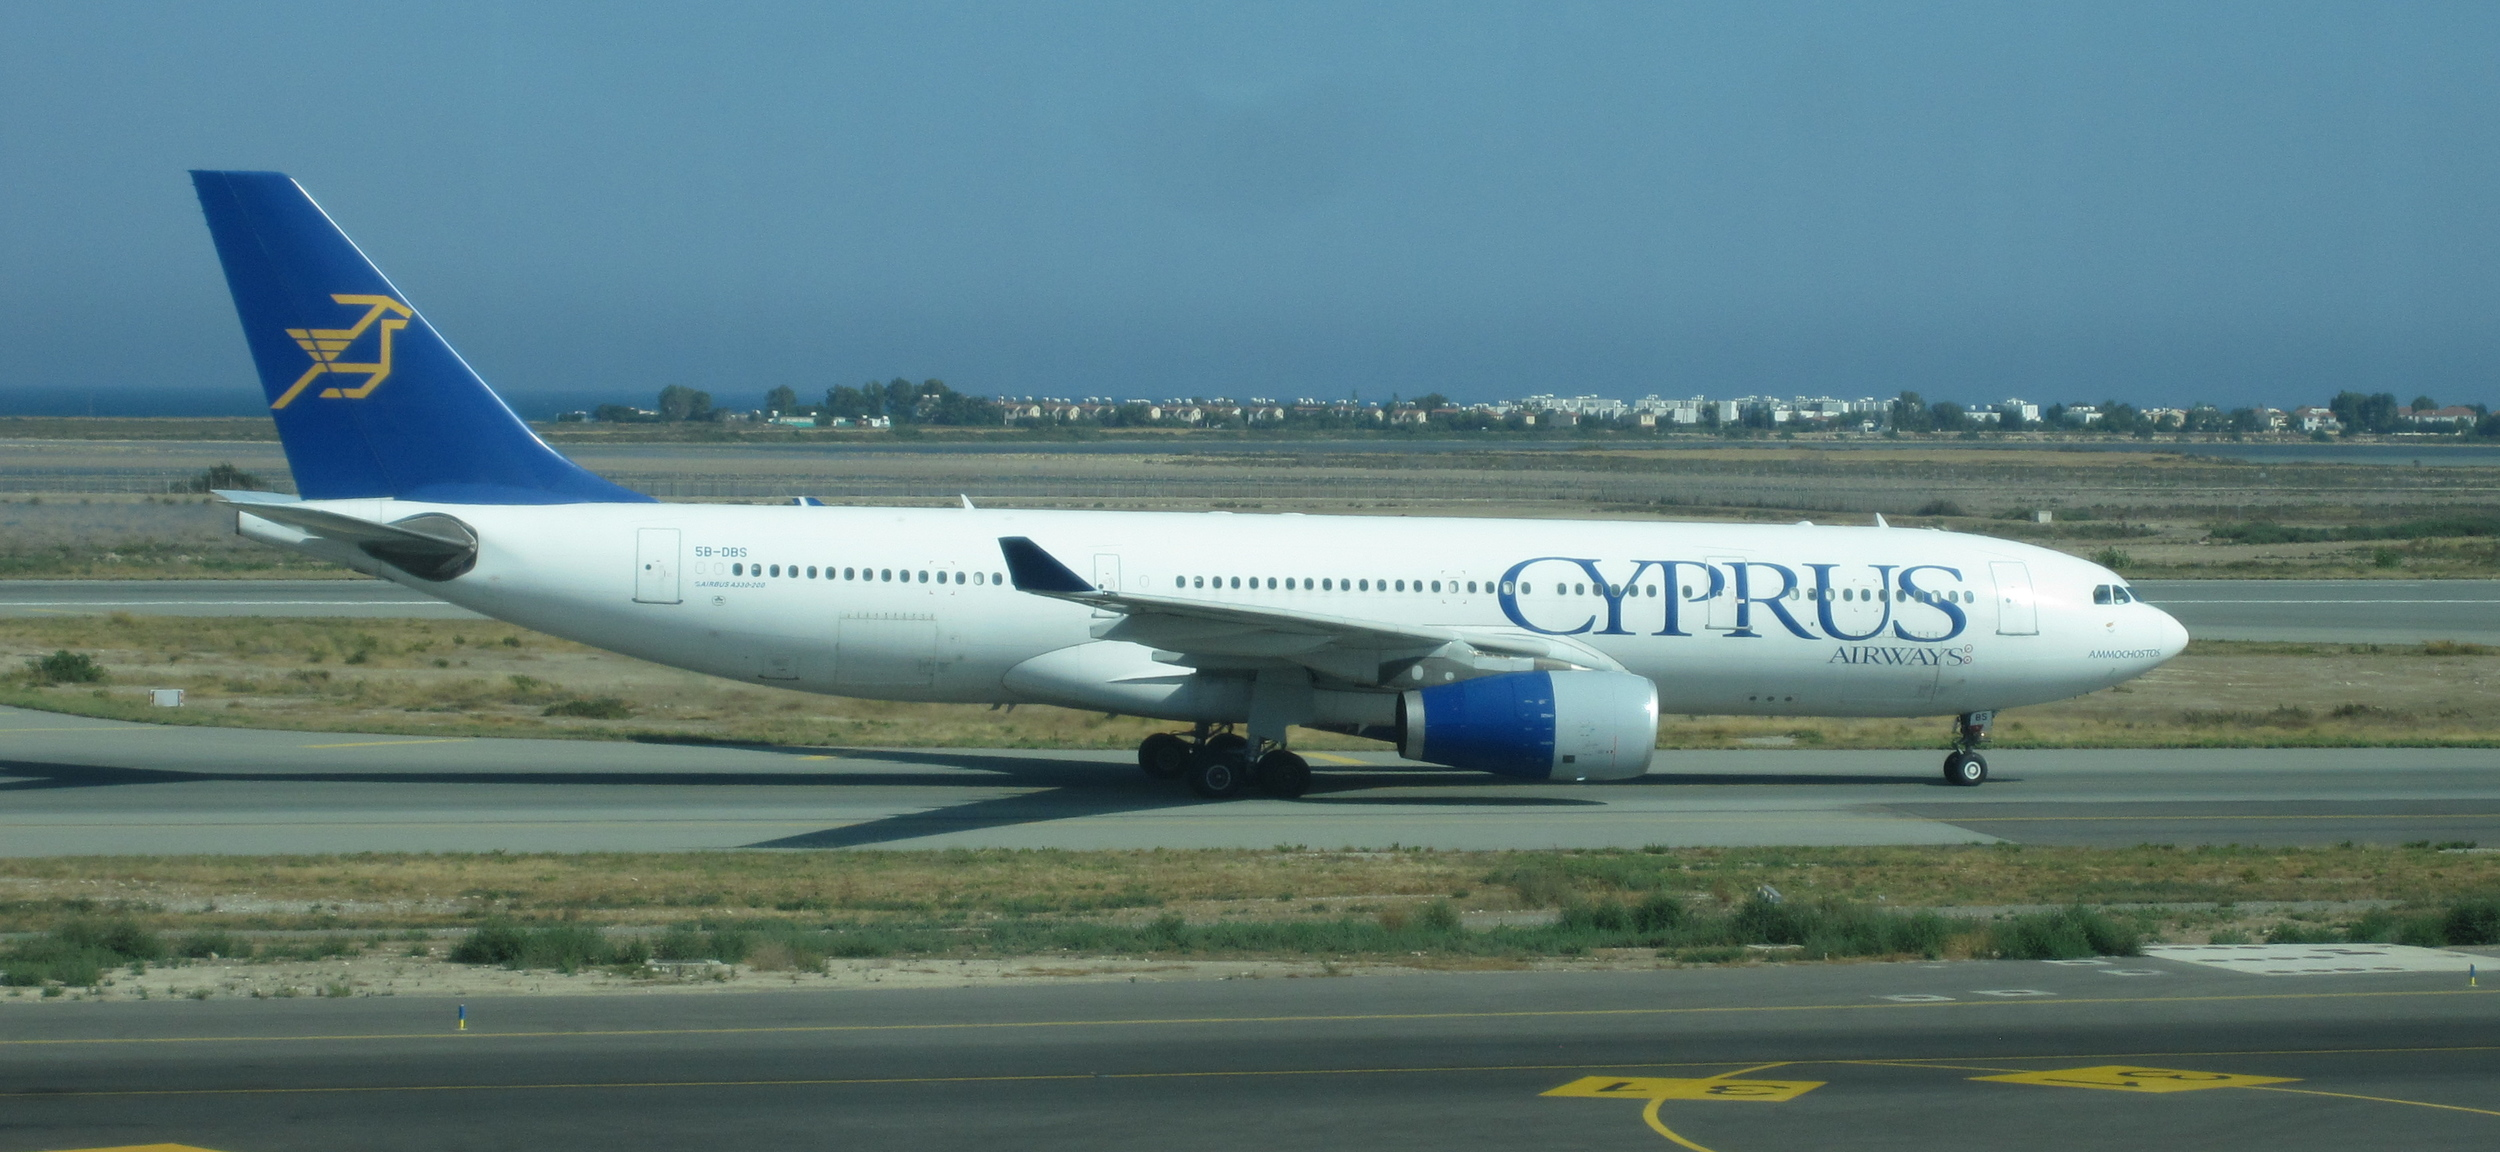 Cyprus Airways: soon under new management?